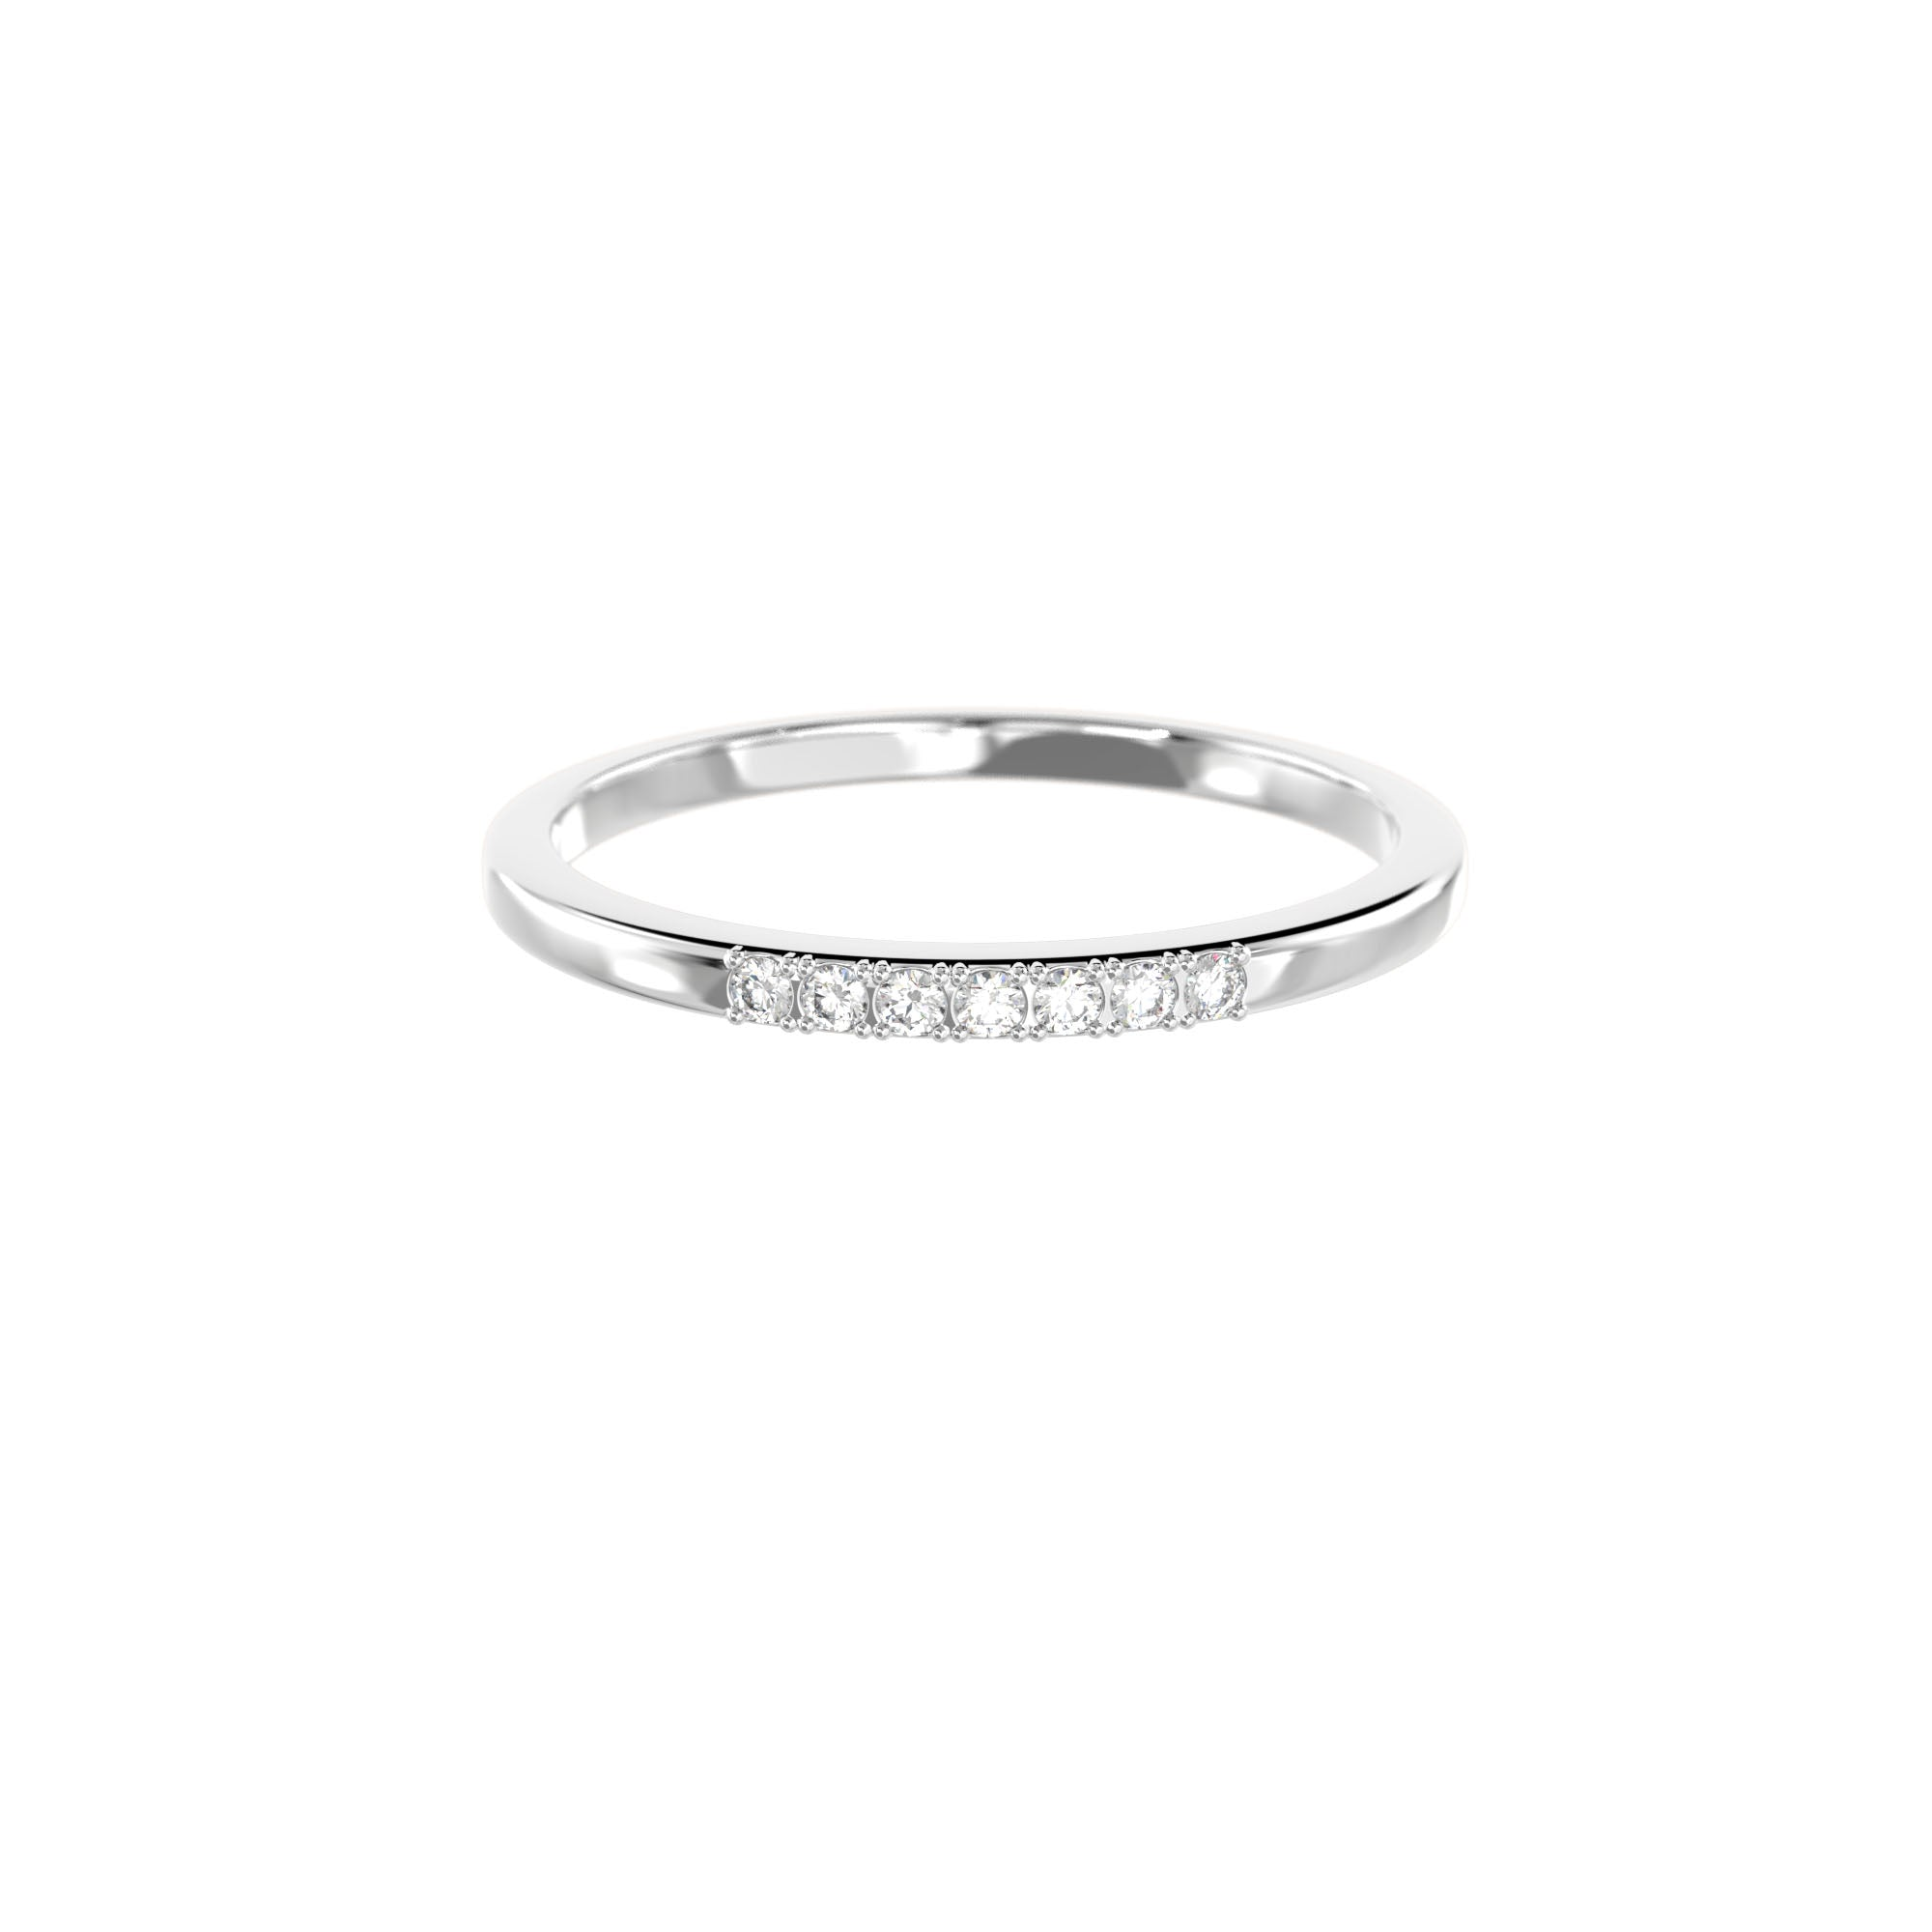 925 Silver Classic Series Ring - Esther (White zirconia) - Rhodium Plated